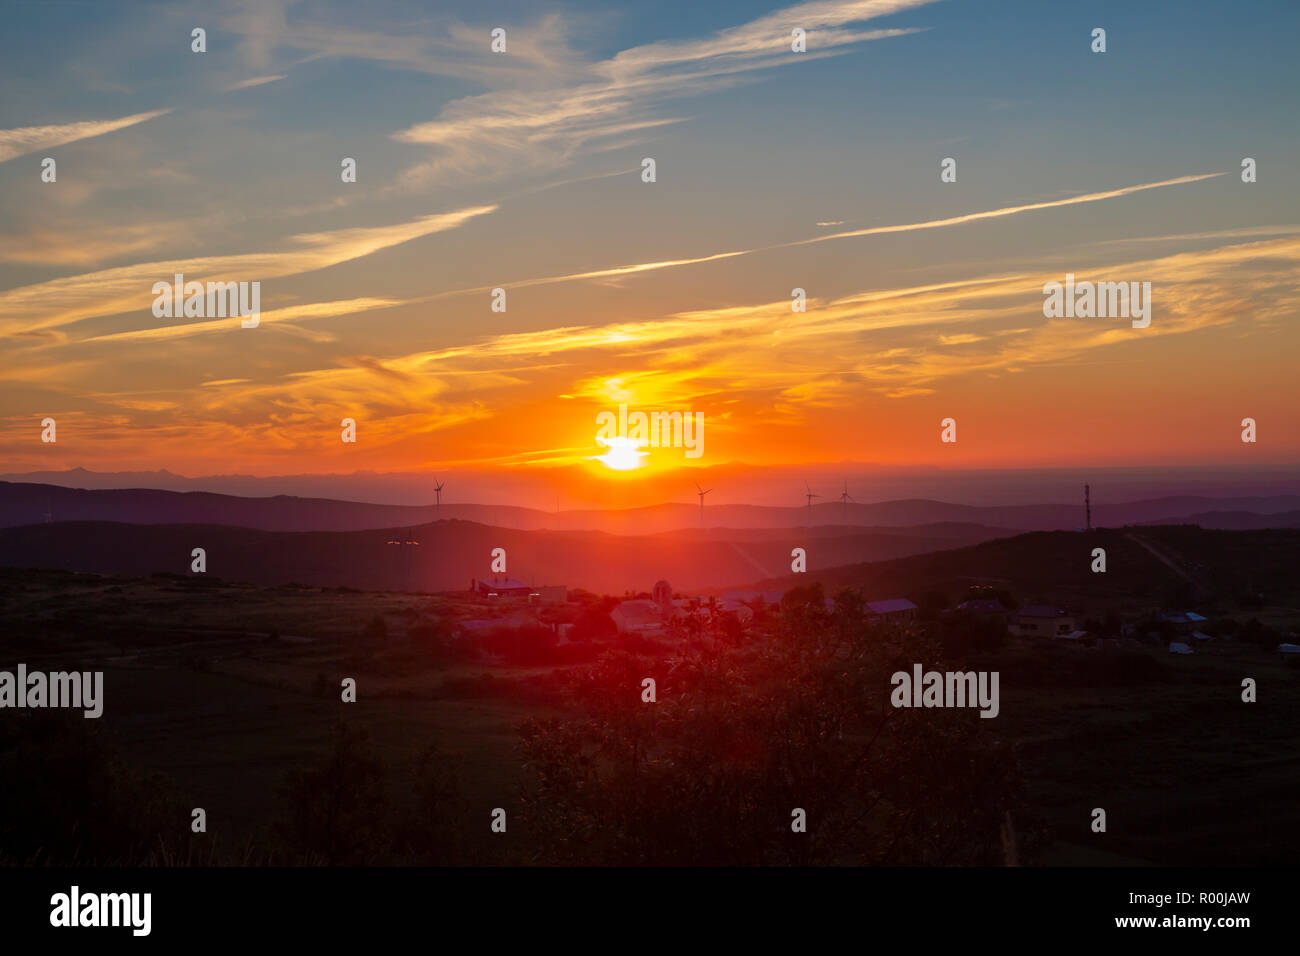 Camino de Santiago (Spain) - Sunshine landscape along the way of St.James near the Cruz de Hierro Stock Photo